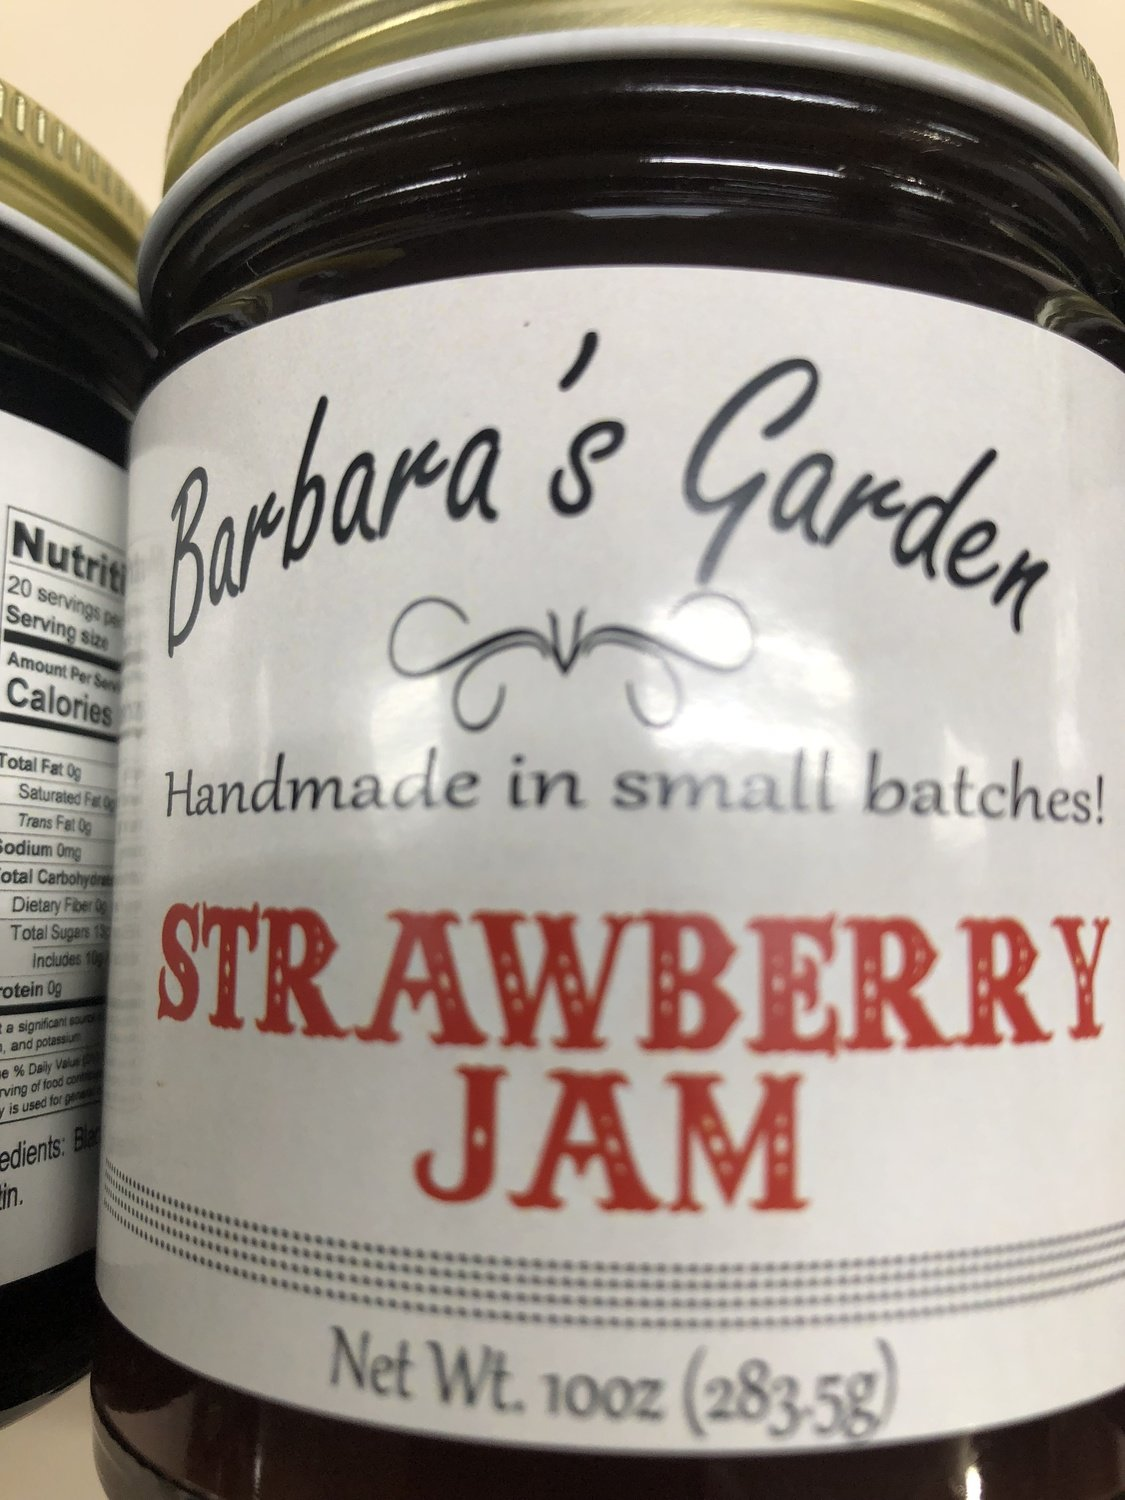 Barbara's Garden Strawberry Jam 10 oz